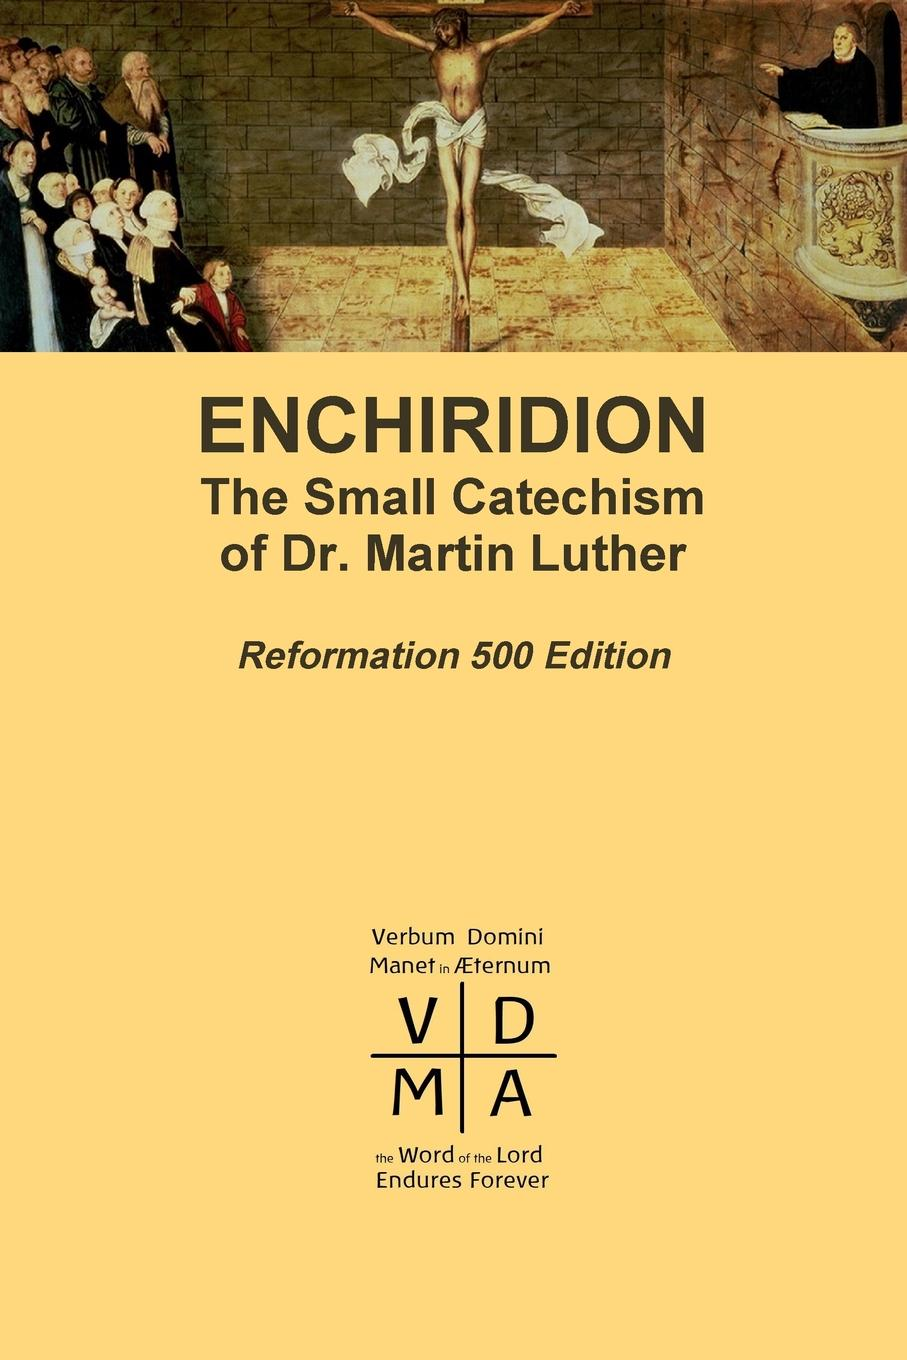 Martin Luther Enchiridion. The Small Catechism of Dr. Martin Luther